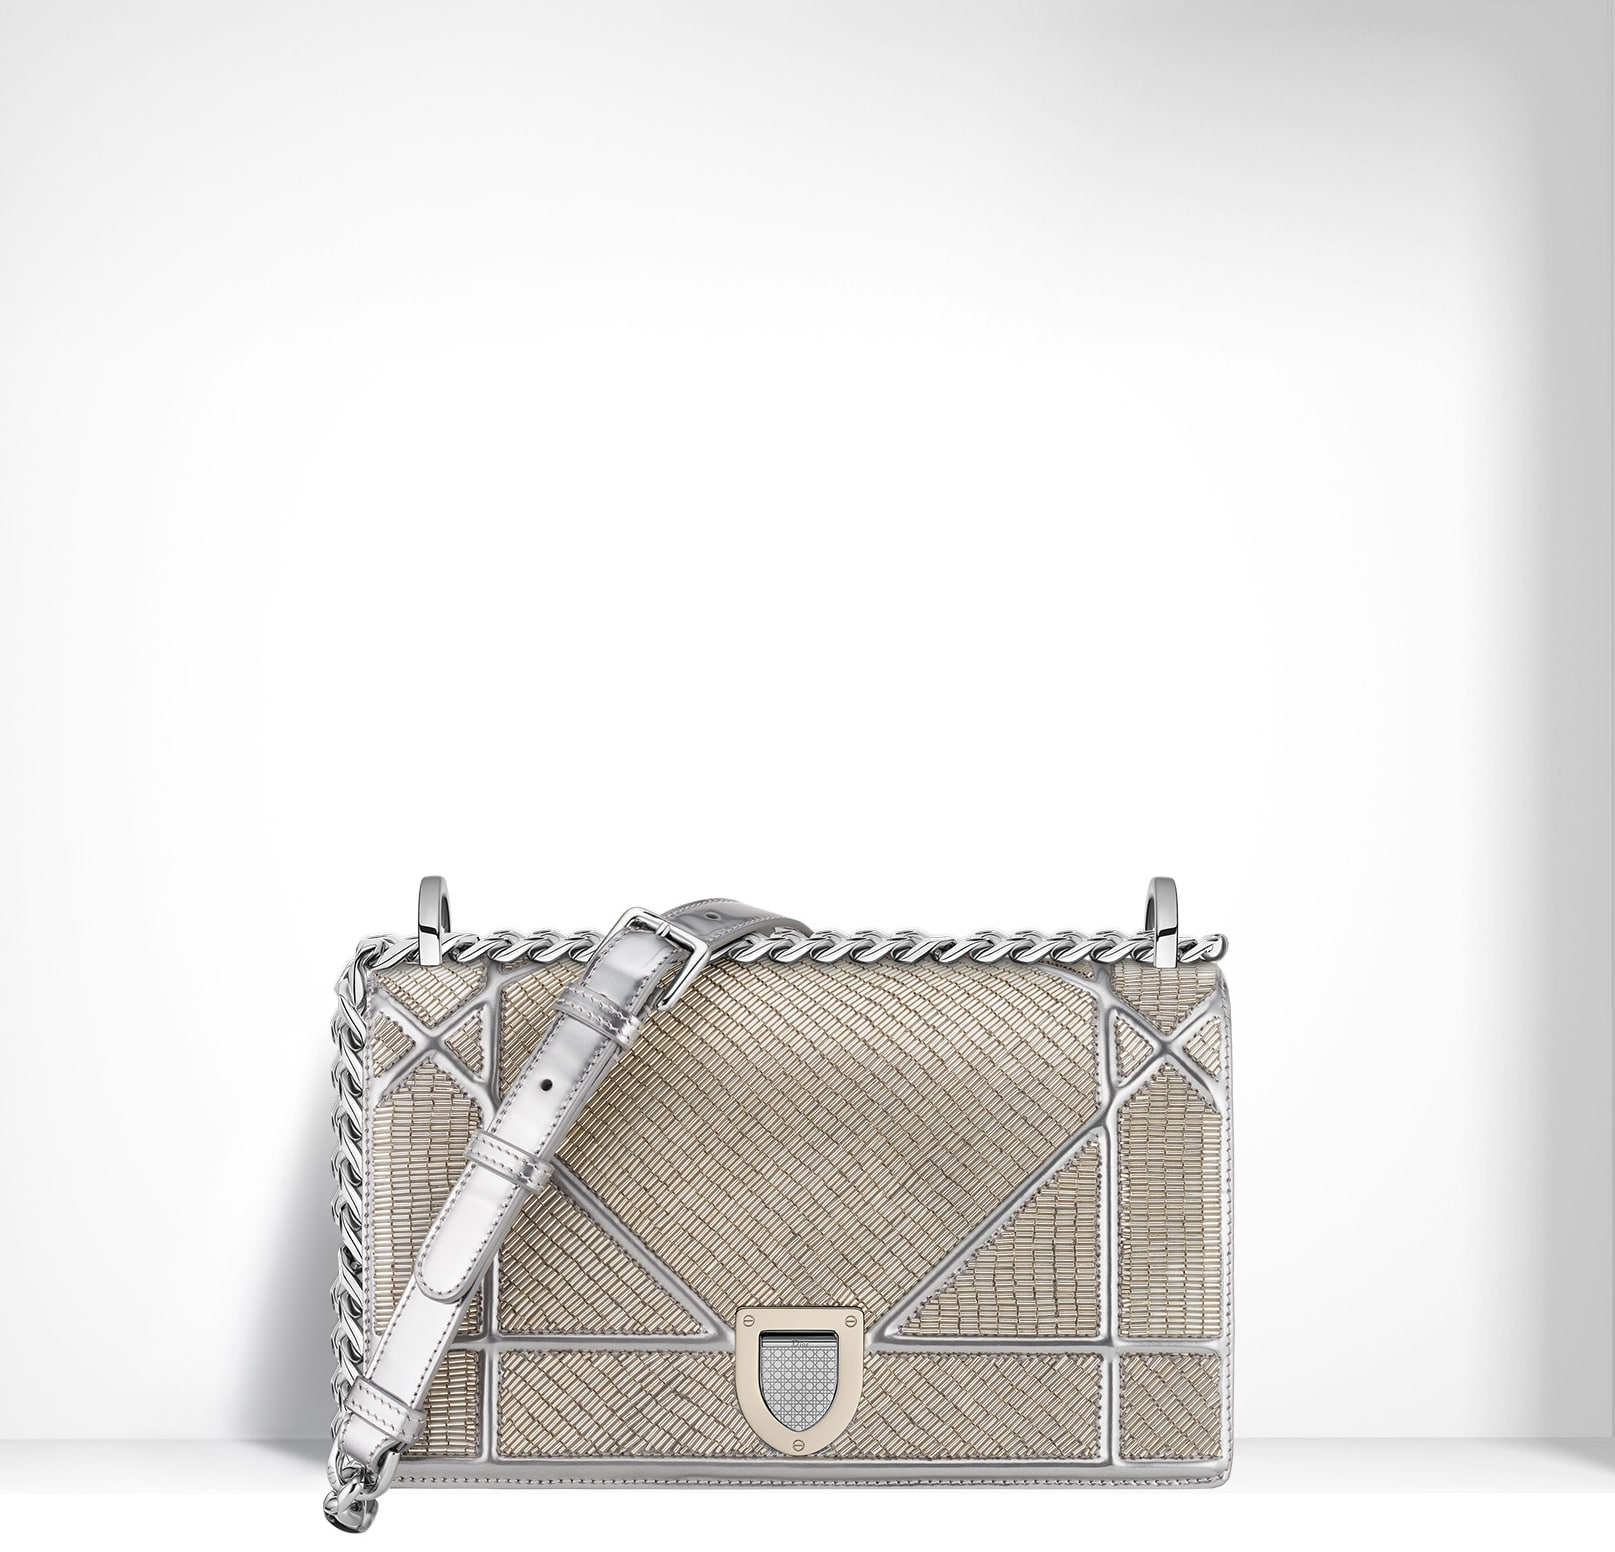 5f099df0e9b5 Dior Mirror Calfskin Embroidered with Silver Sequins Diorama Small Bag ·  Dior Champagne Metallic Calfskin with Micro-Cannage ...